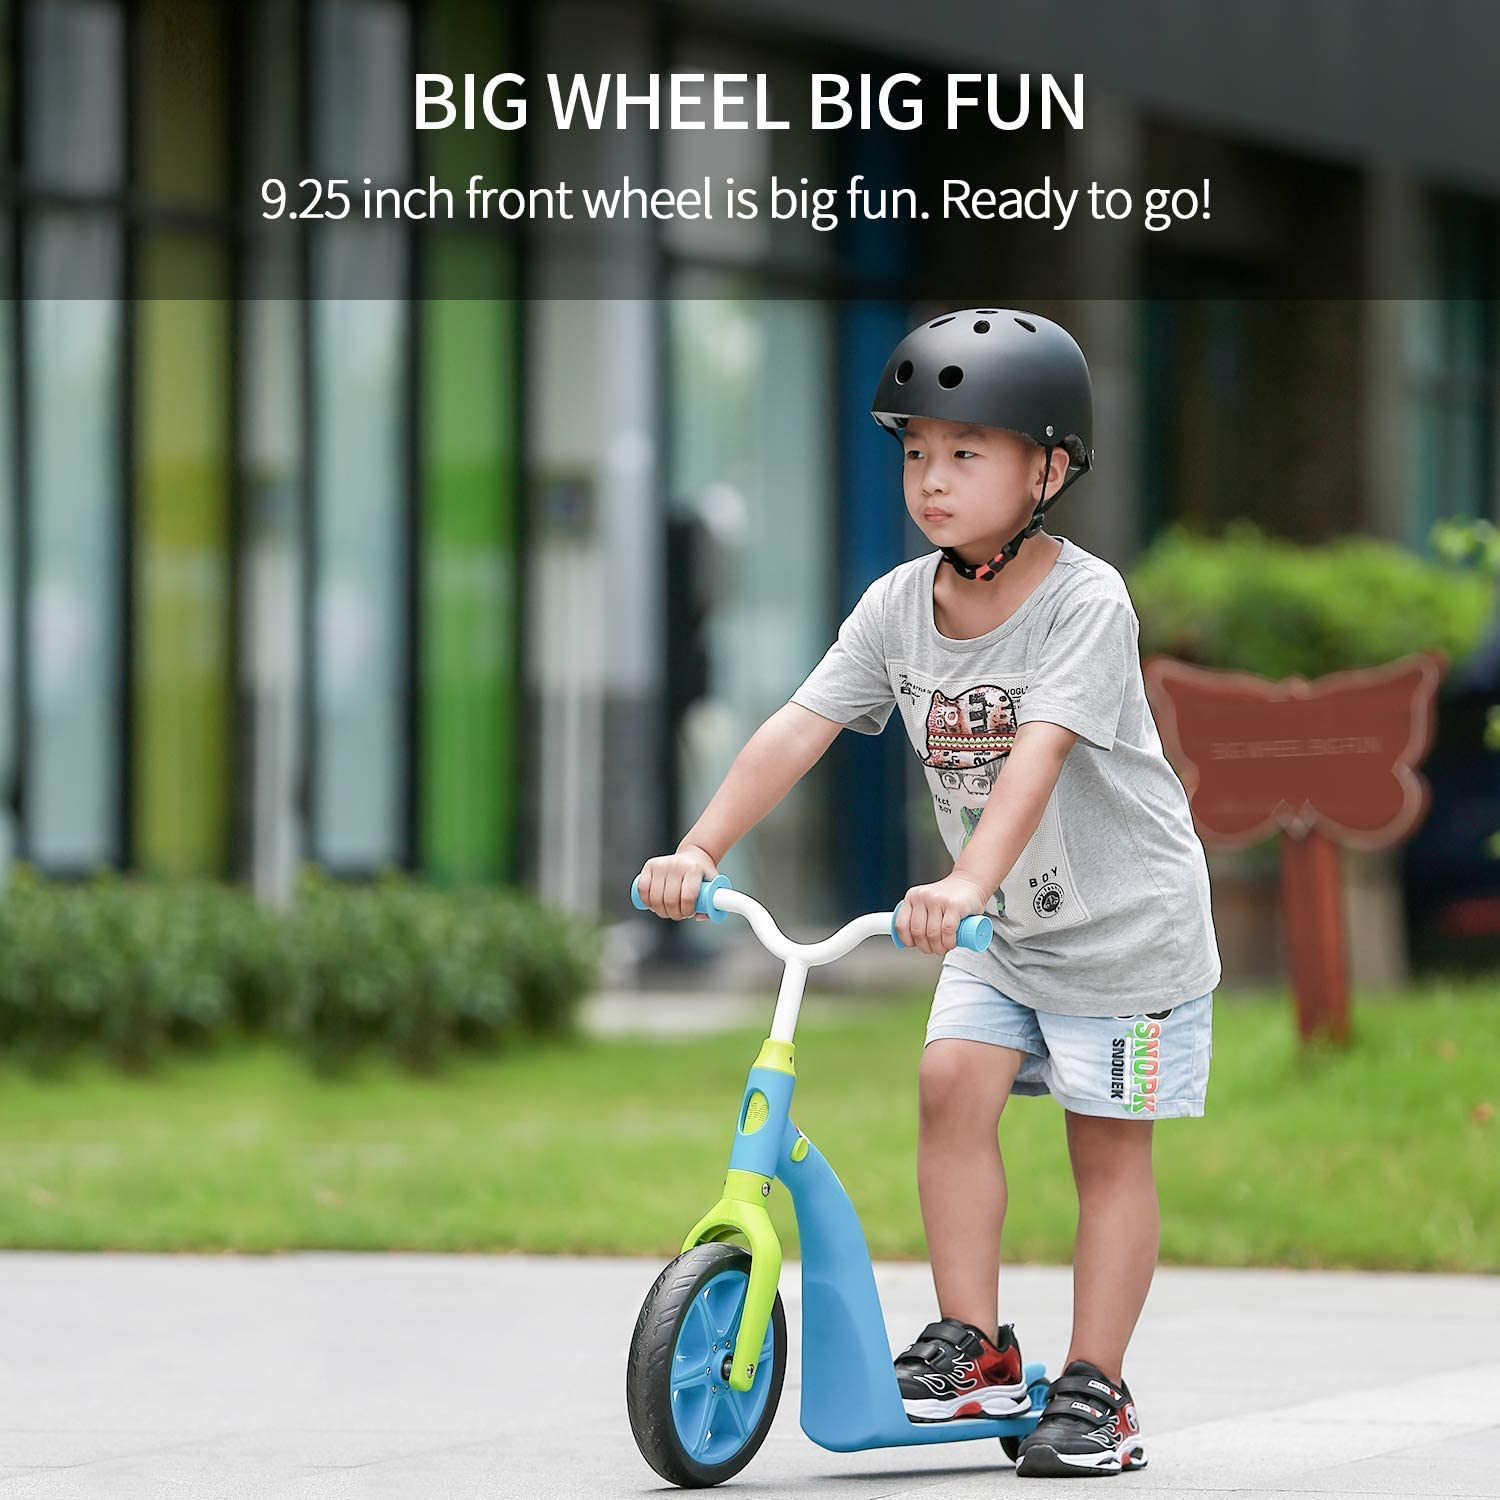 Height Adjustable for Kids /& Toddlers Girls or Boys MACWHEEL 2-in-1 Kick Scooter with Folding//Removable Seat MK1 Three-Wheeled Scooters with LED Light Up Wheels